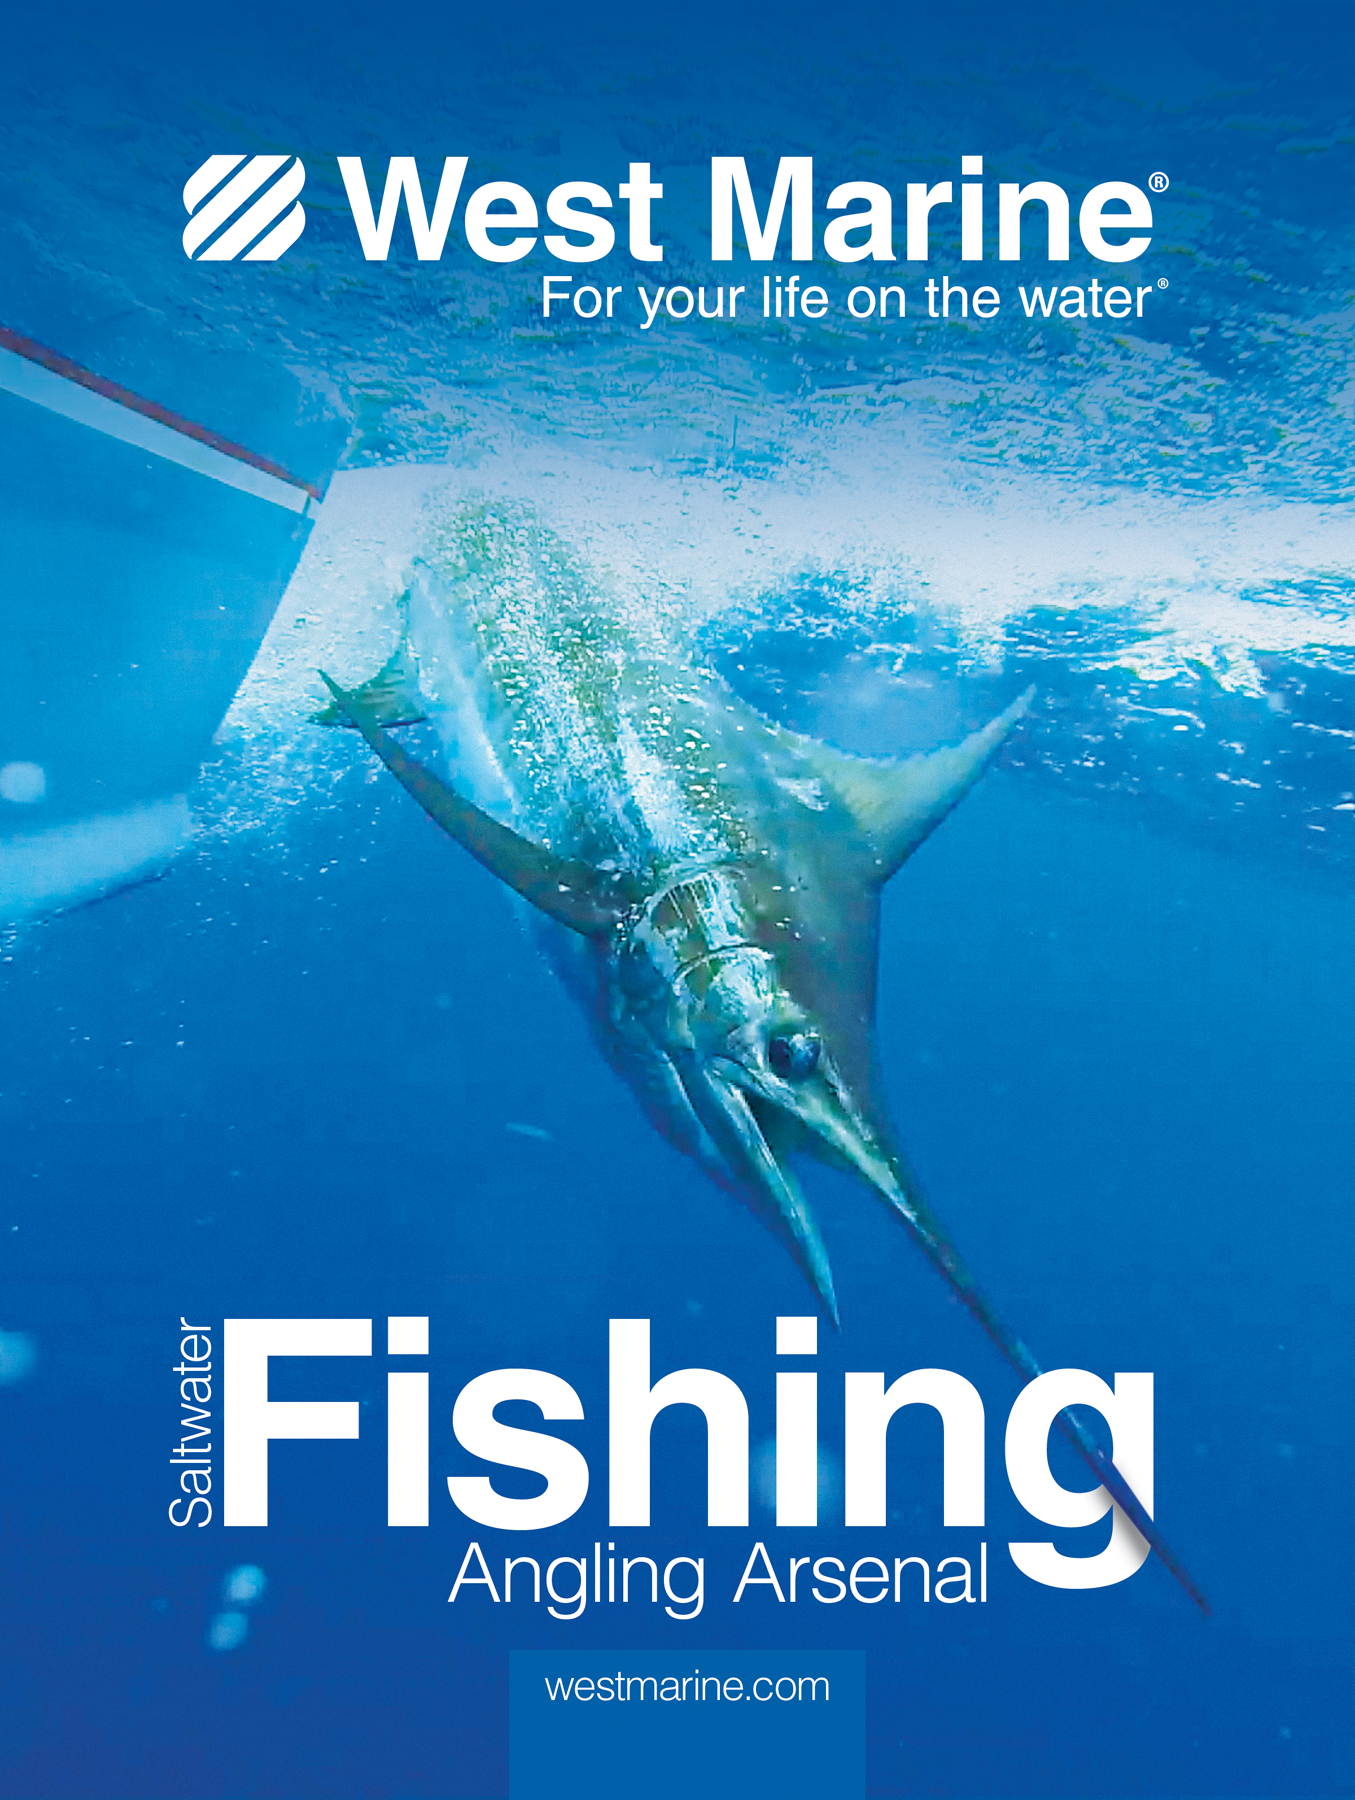 b6885afc7c49 Saltwater Fishing Catalog FREE to West Advantage Members WEST MARINE  EXCLUSIVE Available in all West Marine retail outlets April 1.